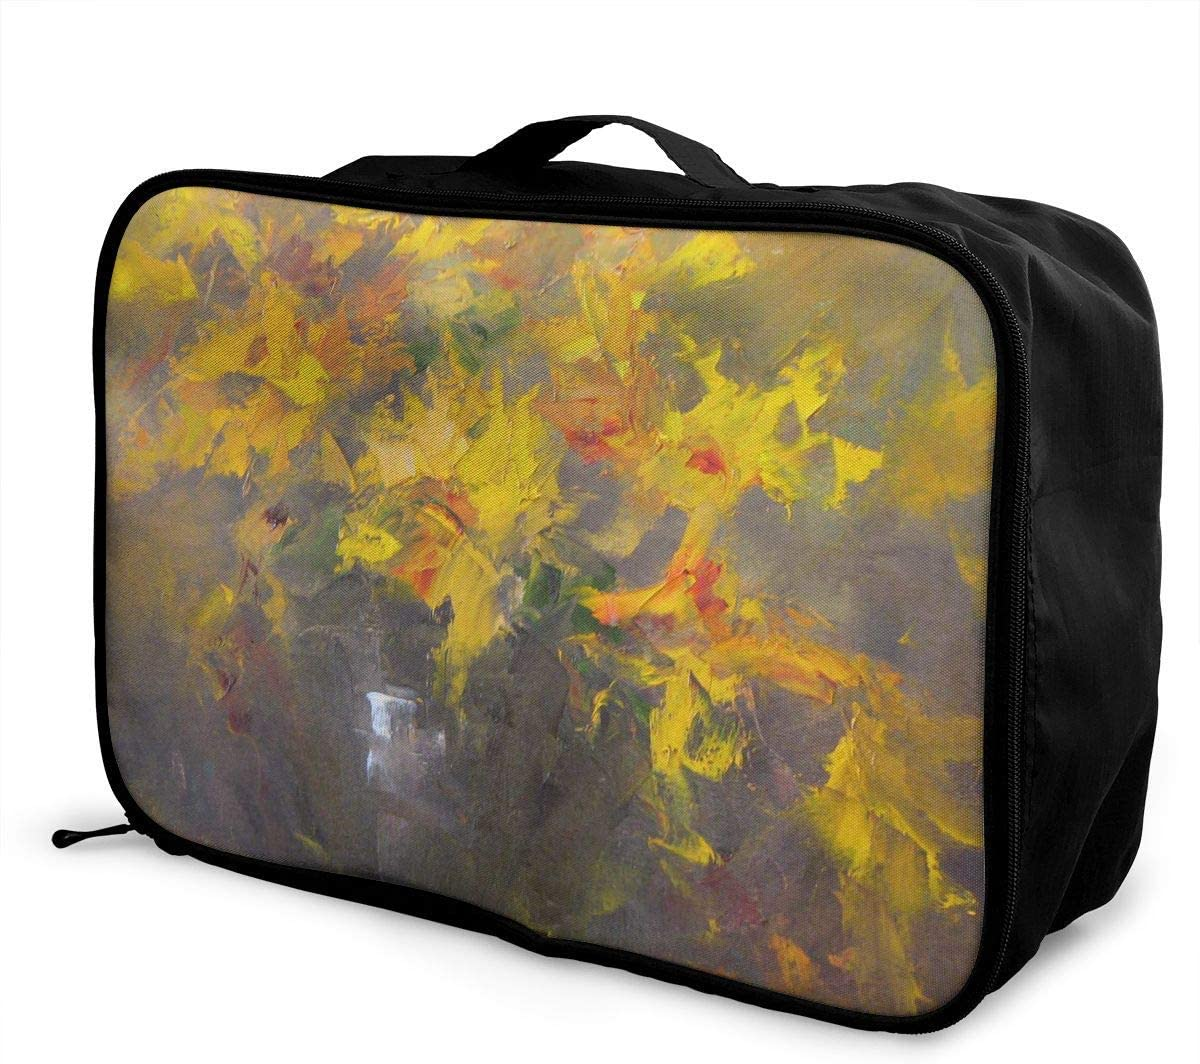 Travel Bags Yellow Artwork Portable Suitcase Trolley Handle Luggage Bag